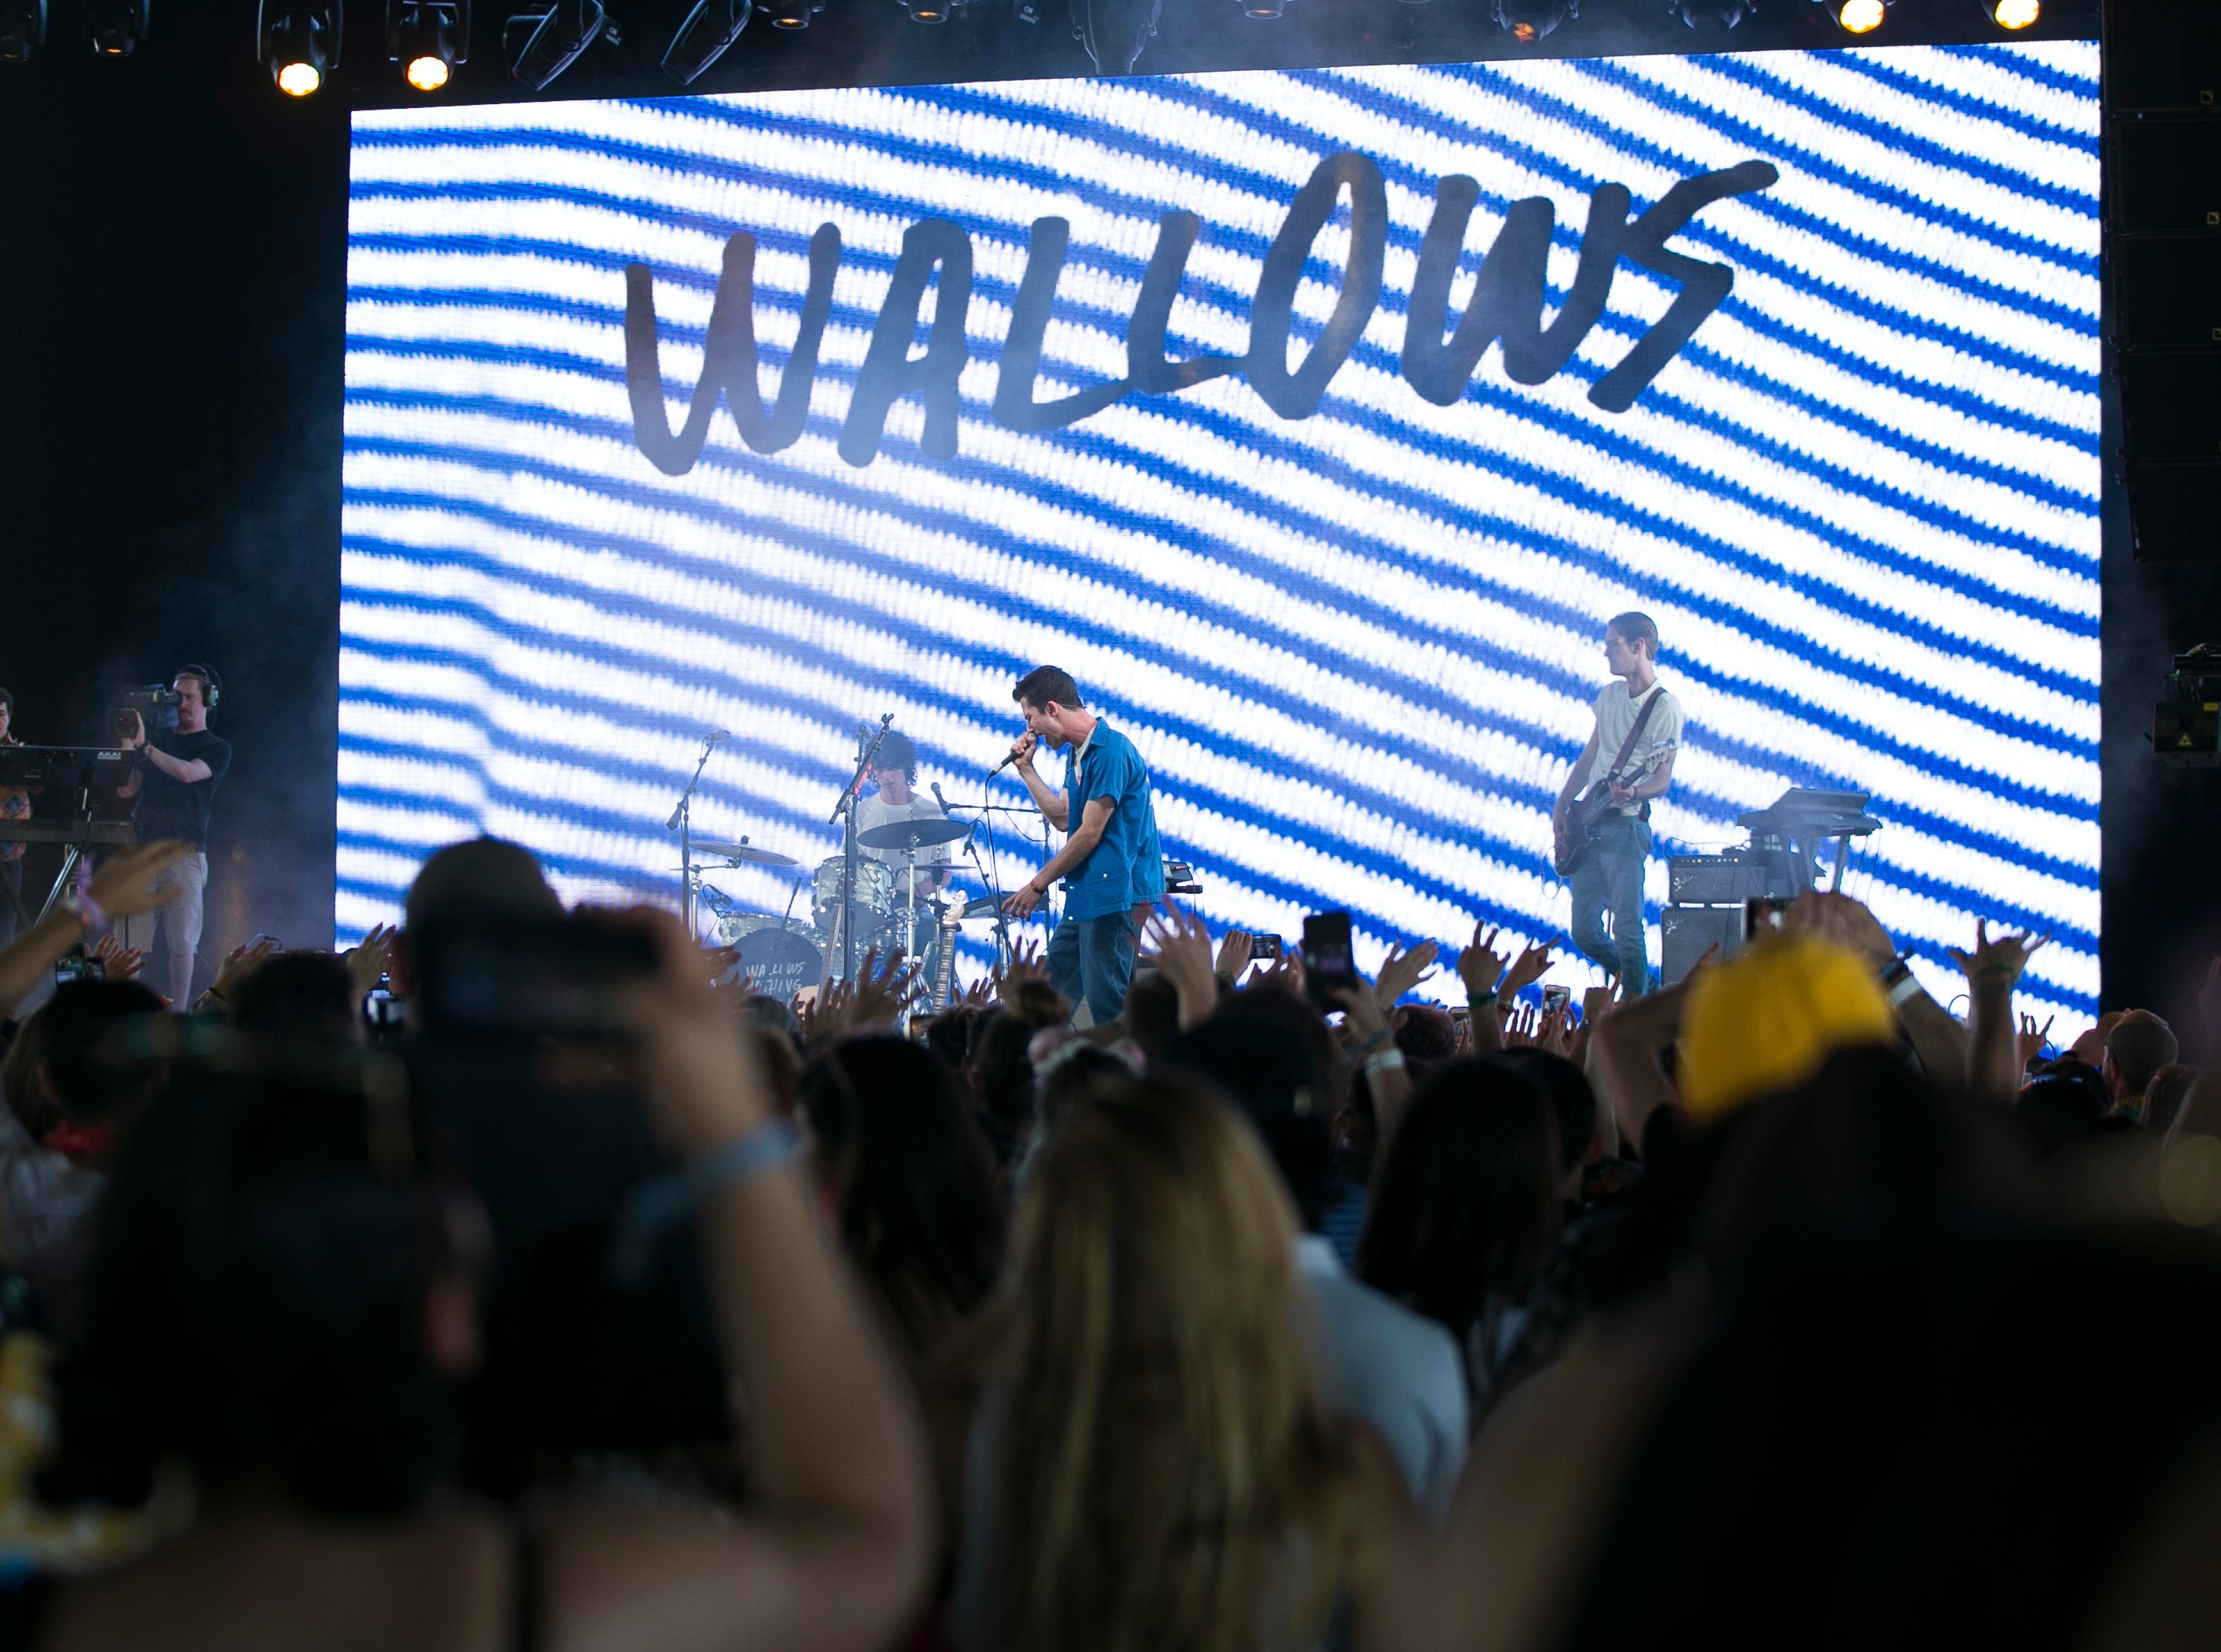 Wallows perform at the Coachella Valley Music and Arts Festival in Indio, Calif., on Saturday, April 13, 2019.